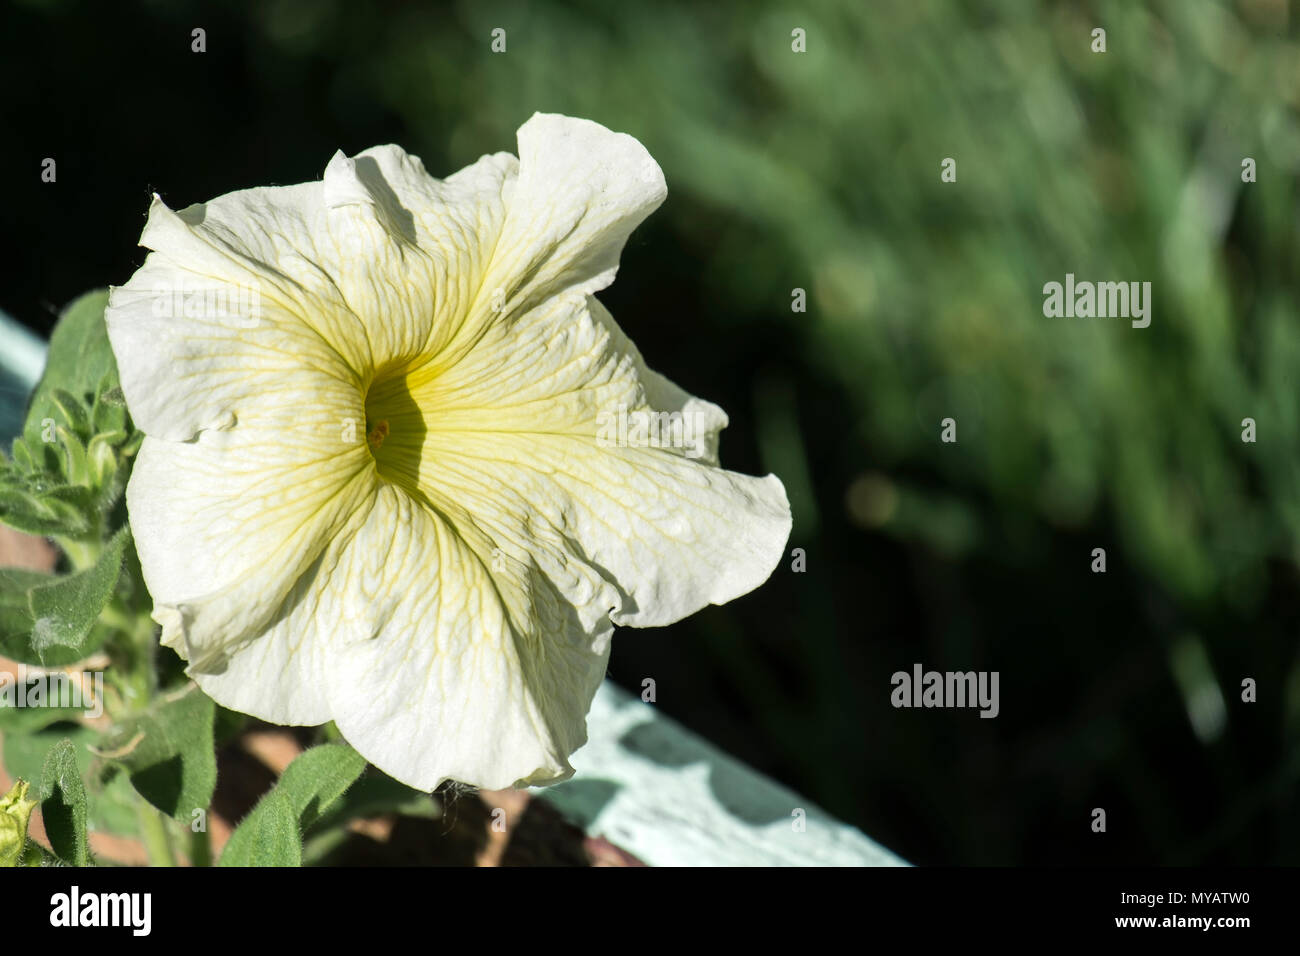 Large Milky White Petunia Flower With Yellow Streaks Petunia